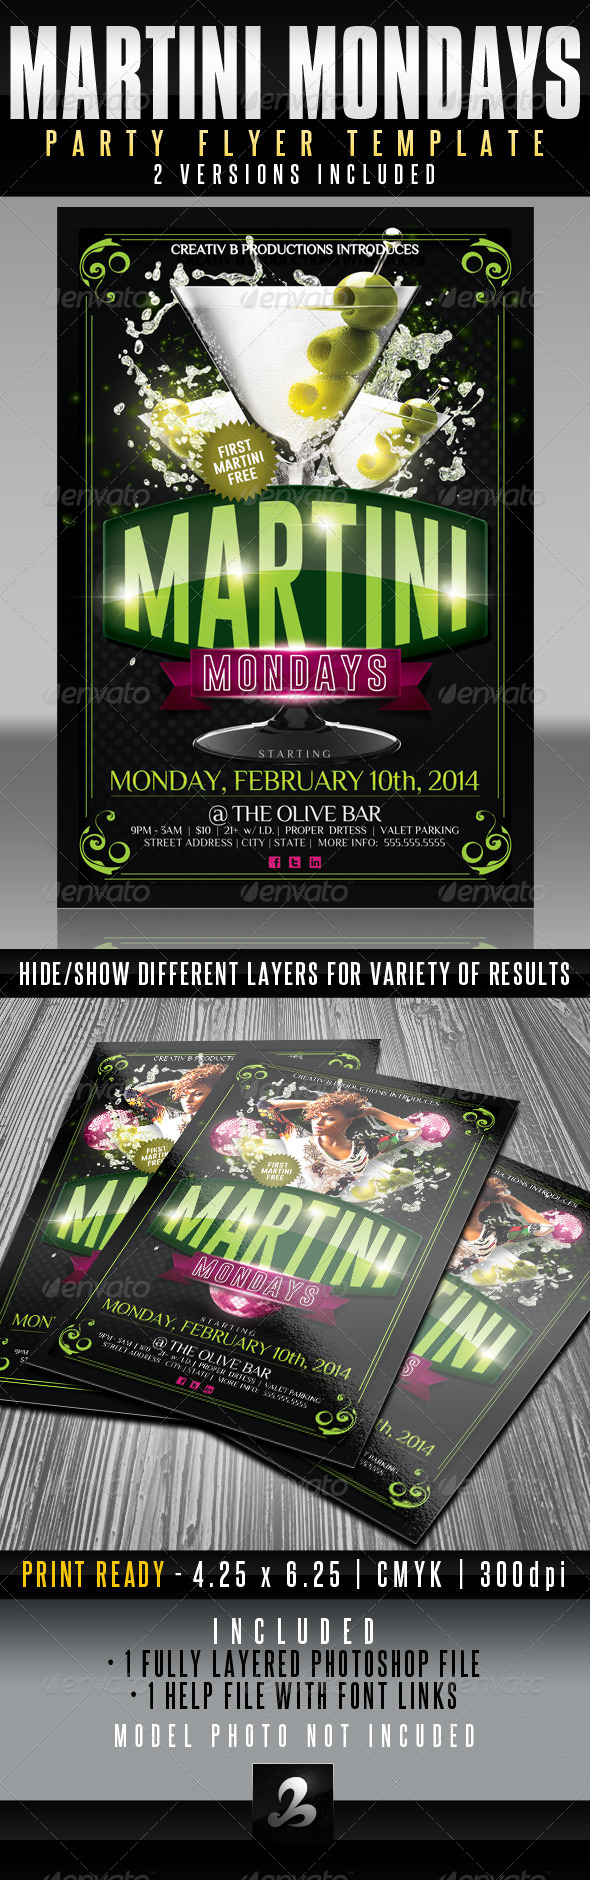 Martini Mondays Party Flyer Template - UPDATED - Clubs & Parties Events